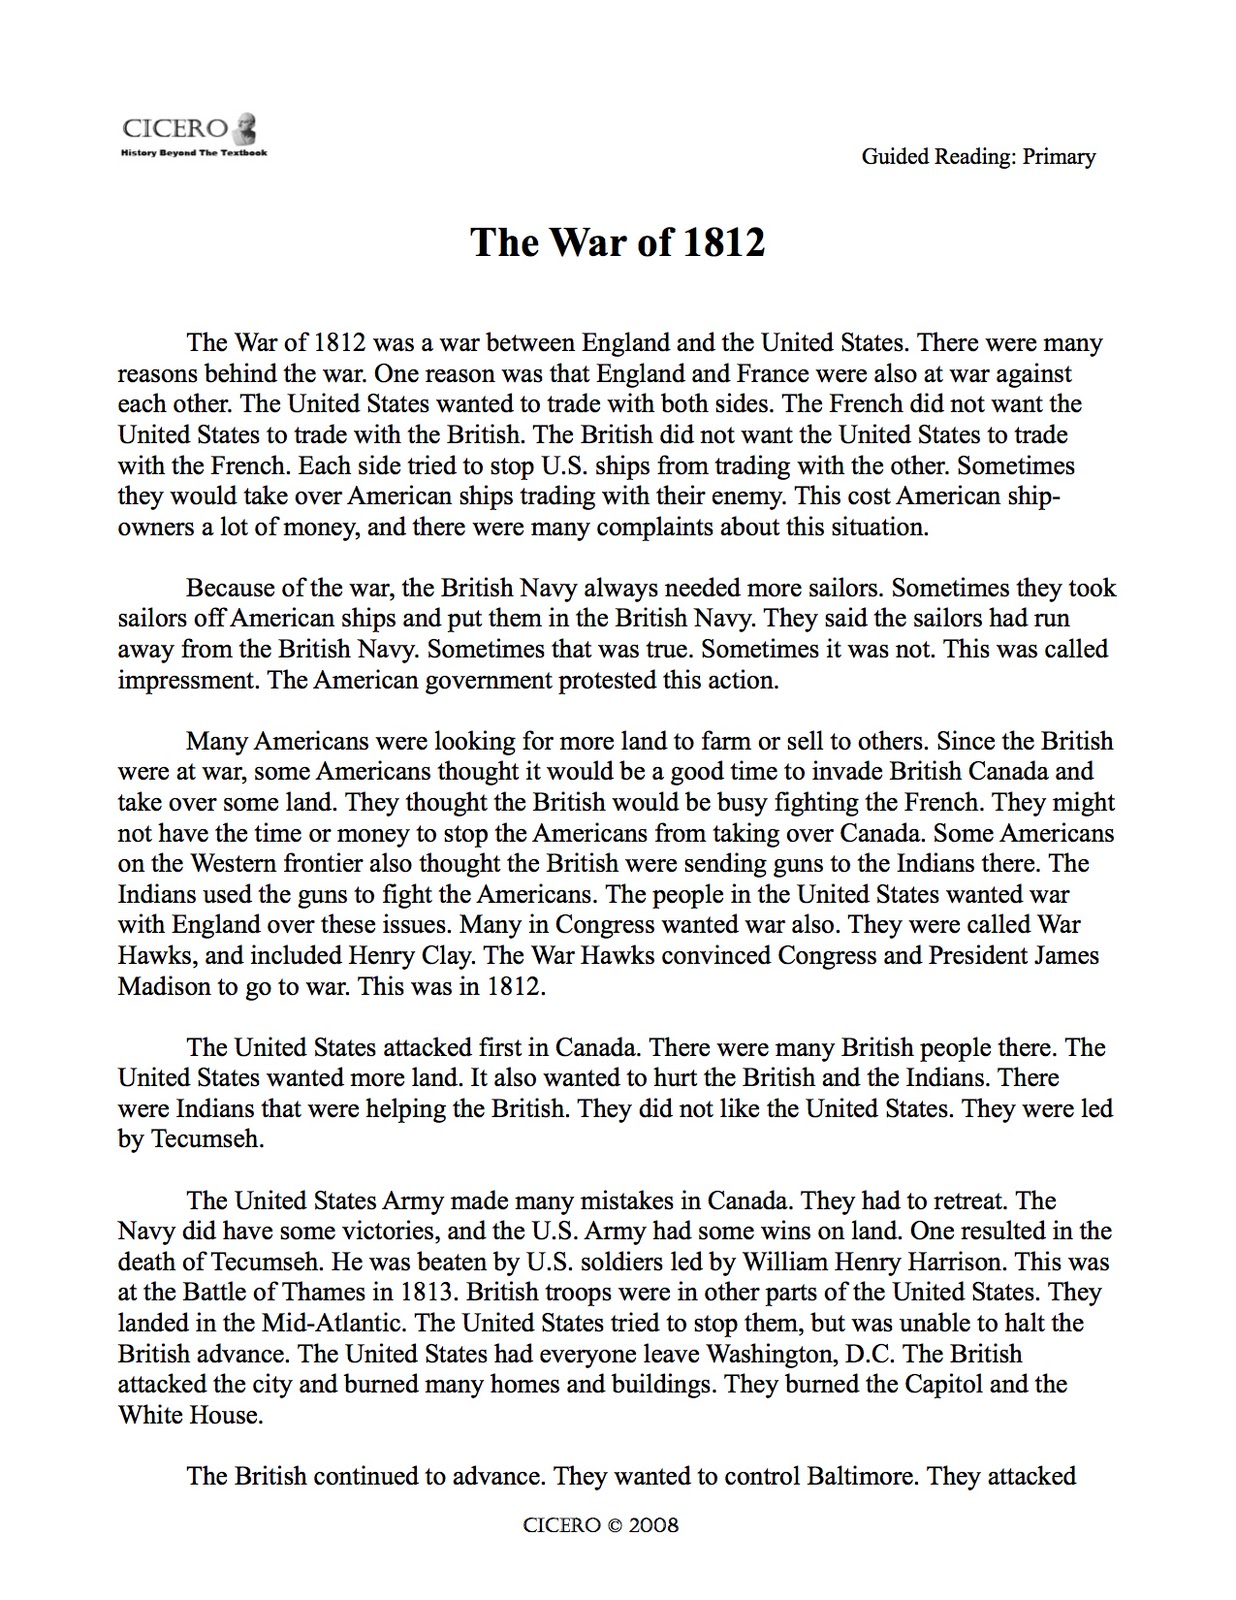 004 Trojan War Essay Doorway Keyword Heilbrunn Argumentative Against Transgender Warof1812re On Bathrooms Stirring Persuasive Topics Paper Outline Full